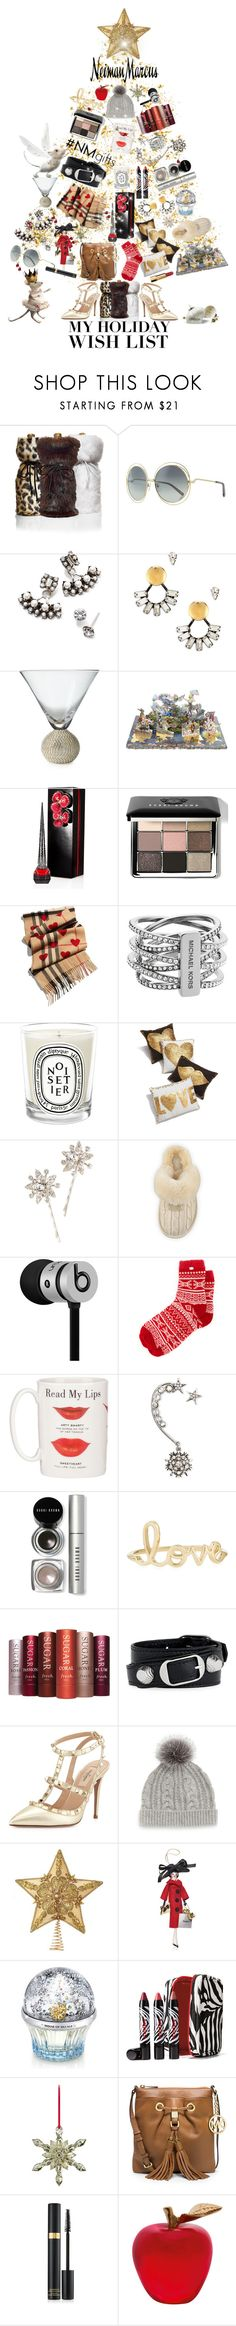 """The Holiday Wish List With Neiman Marcus: Contest Entry"" by cjfdesign on Polyvore featuring Chloé, DANNIJO, Neiman Marcus, Christian Lacroix, Christian Louboutin, Bobbi Brown Cosmetics, Burberry, Michael Kors, Diptyque and Jonathan Adler"